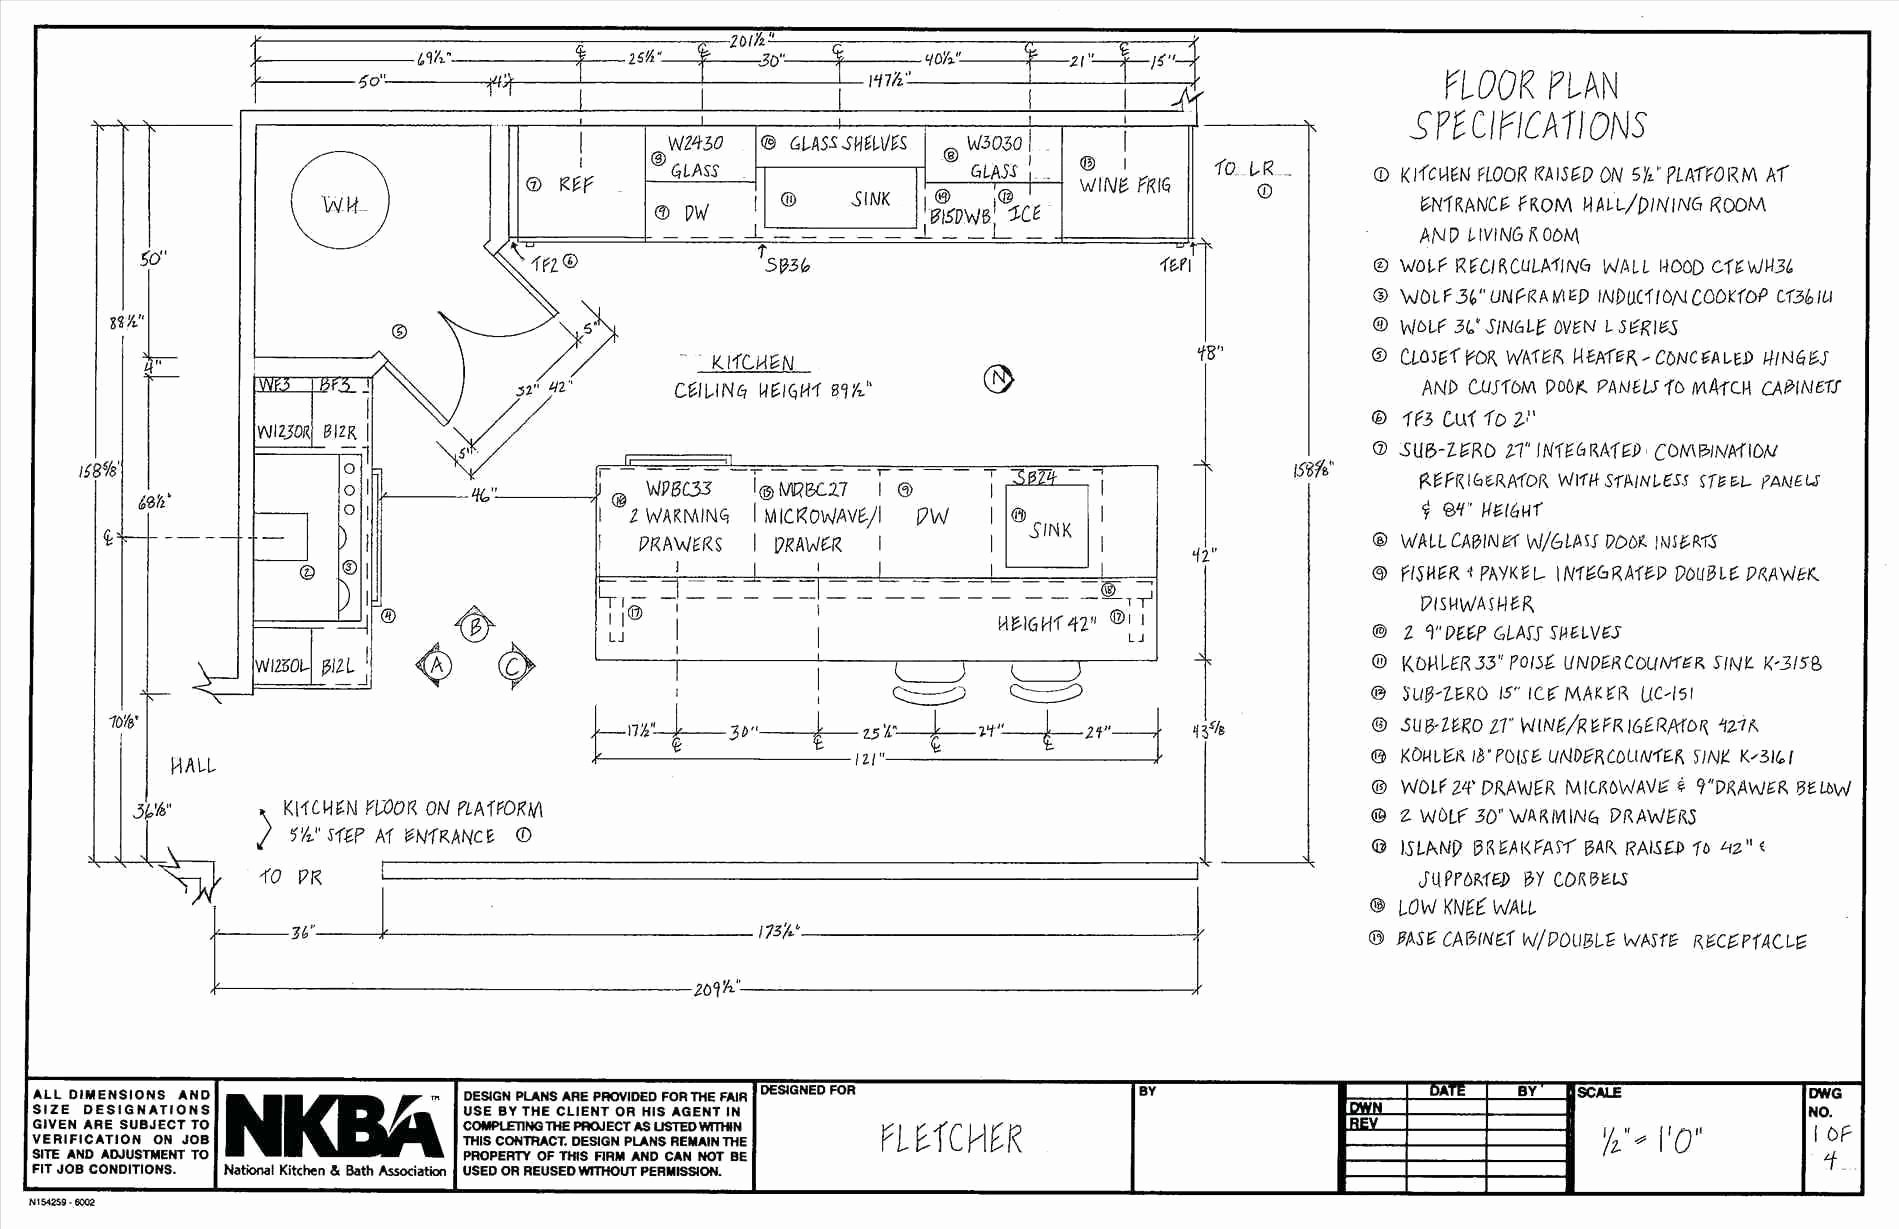 Home Renovation Project Plan Template Excel New Home Renovation Project Plan Template Free Templates Pdf